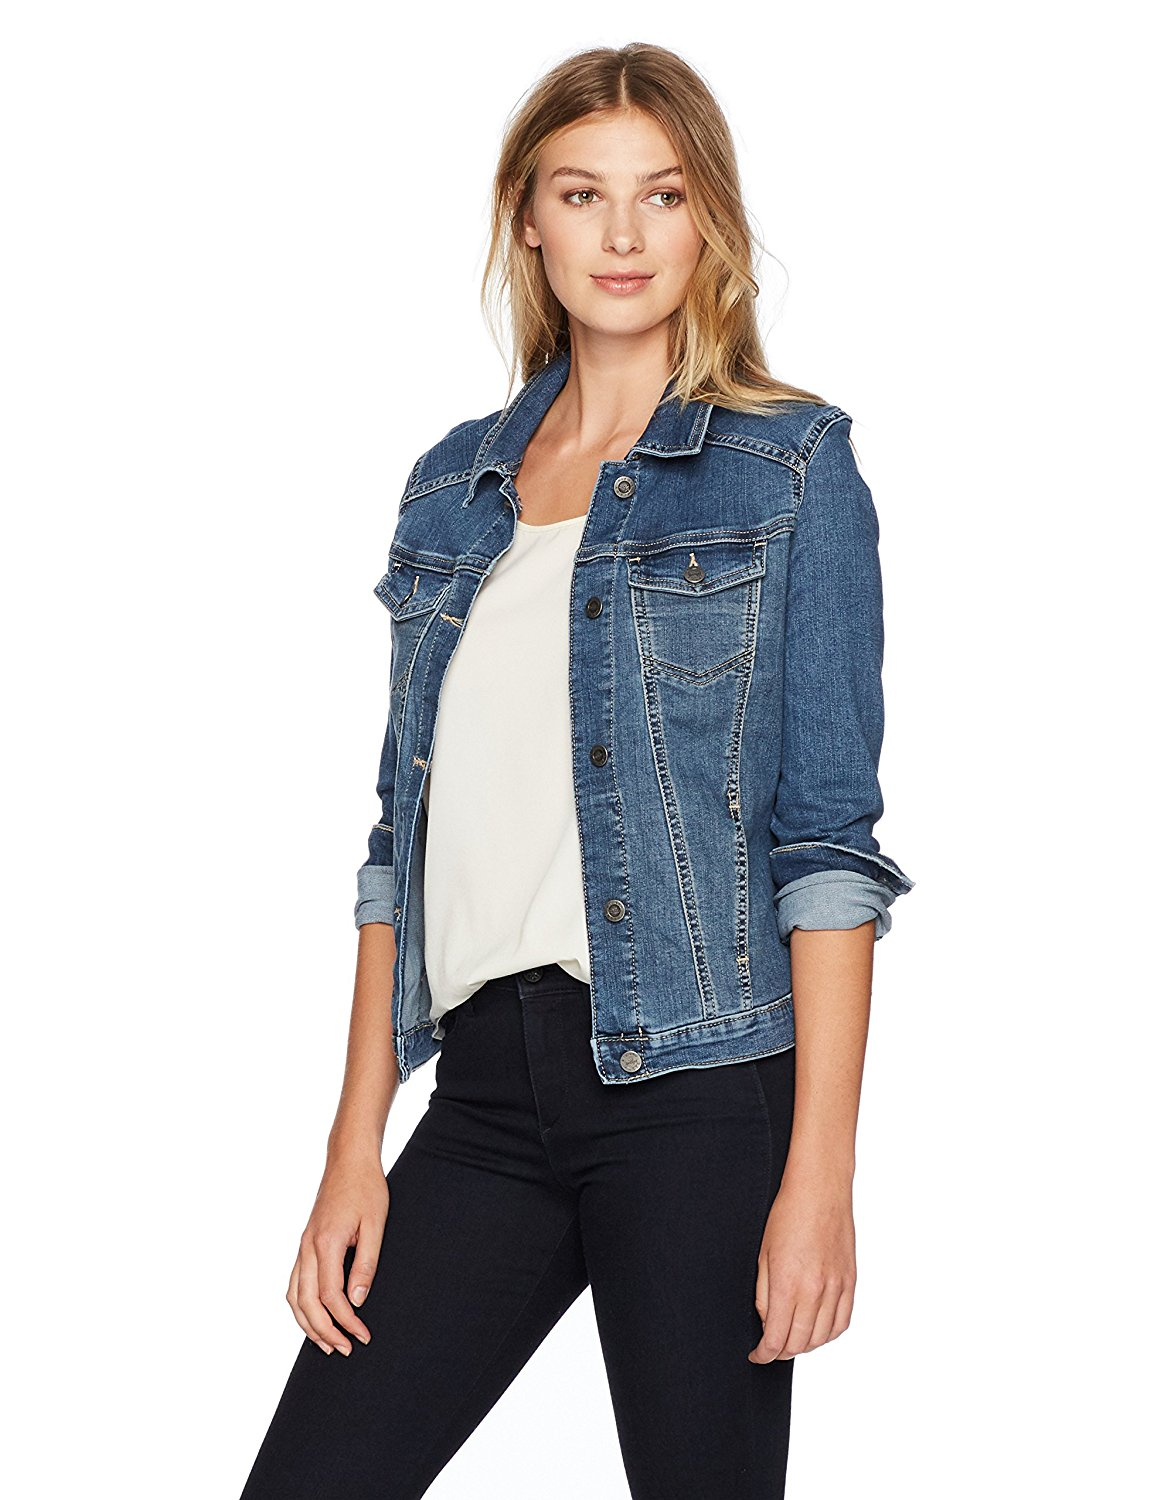 381159b3f3b Get Quotations · Riders by Lee Indigo Women s Denim Jacket